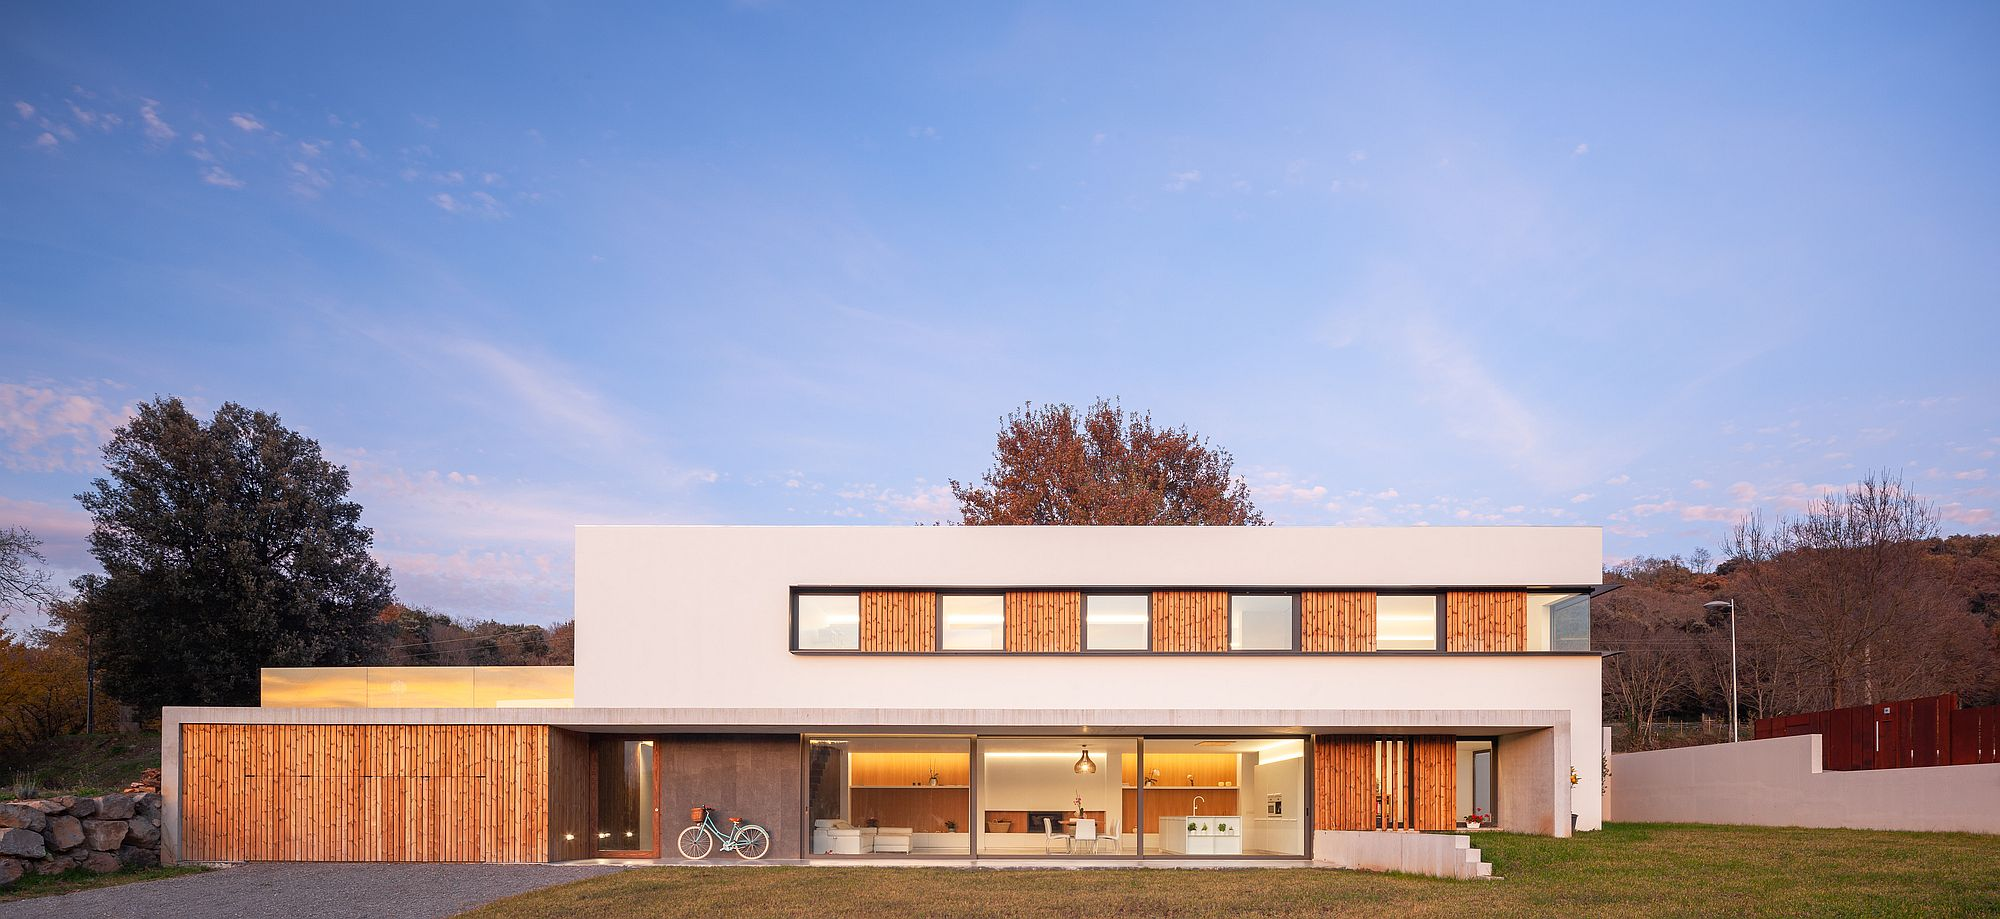 Box-like design of contemporary home in wood and white with lovely lighting